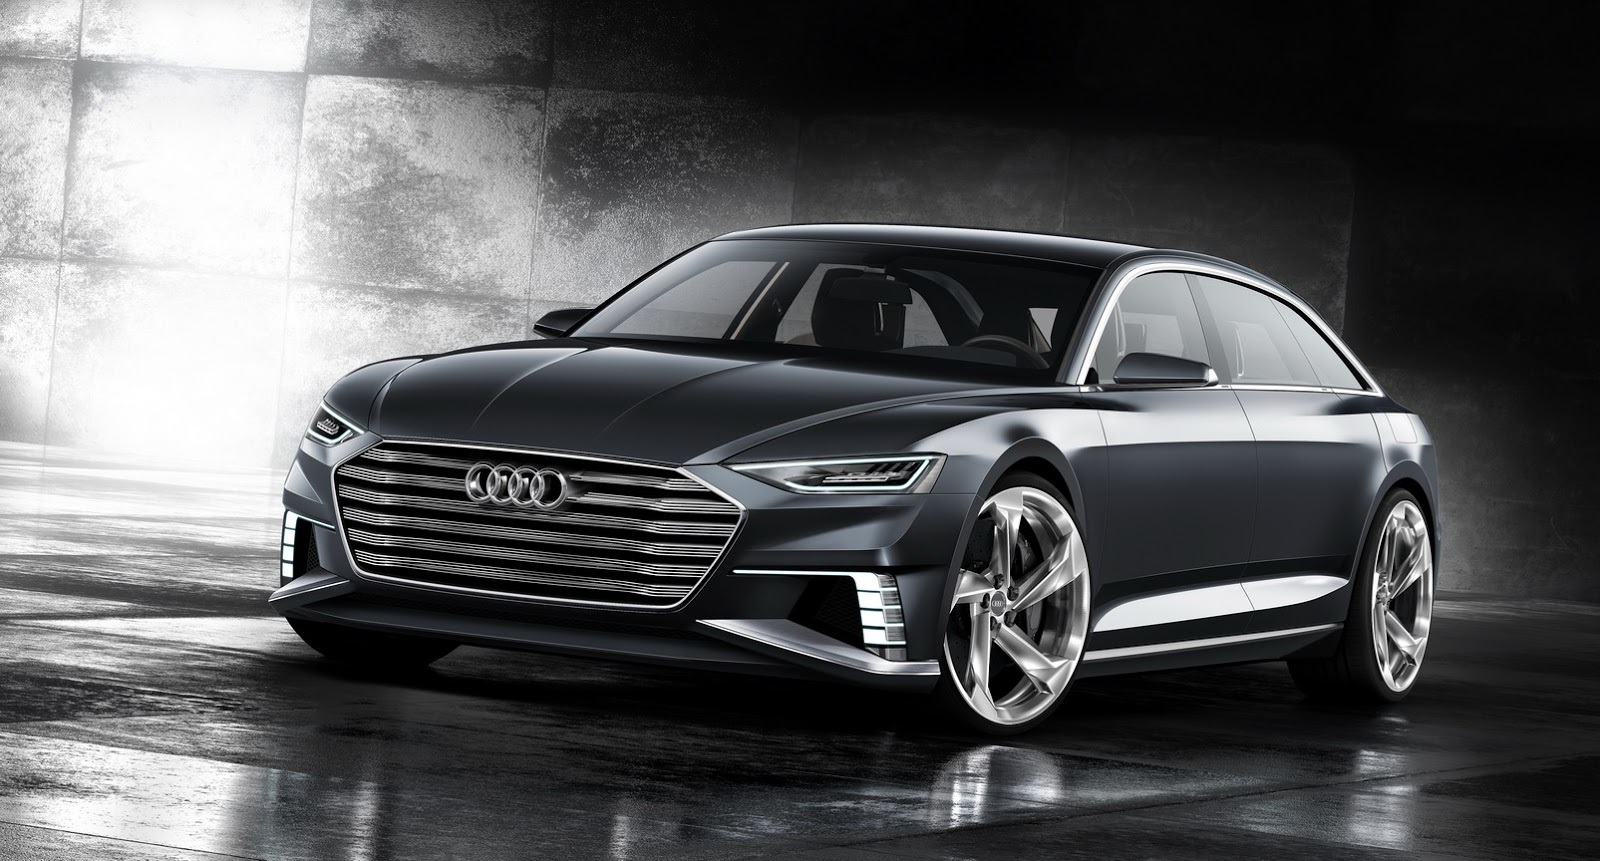 Audi Prologue Avant Concept 2015 01